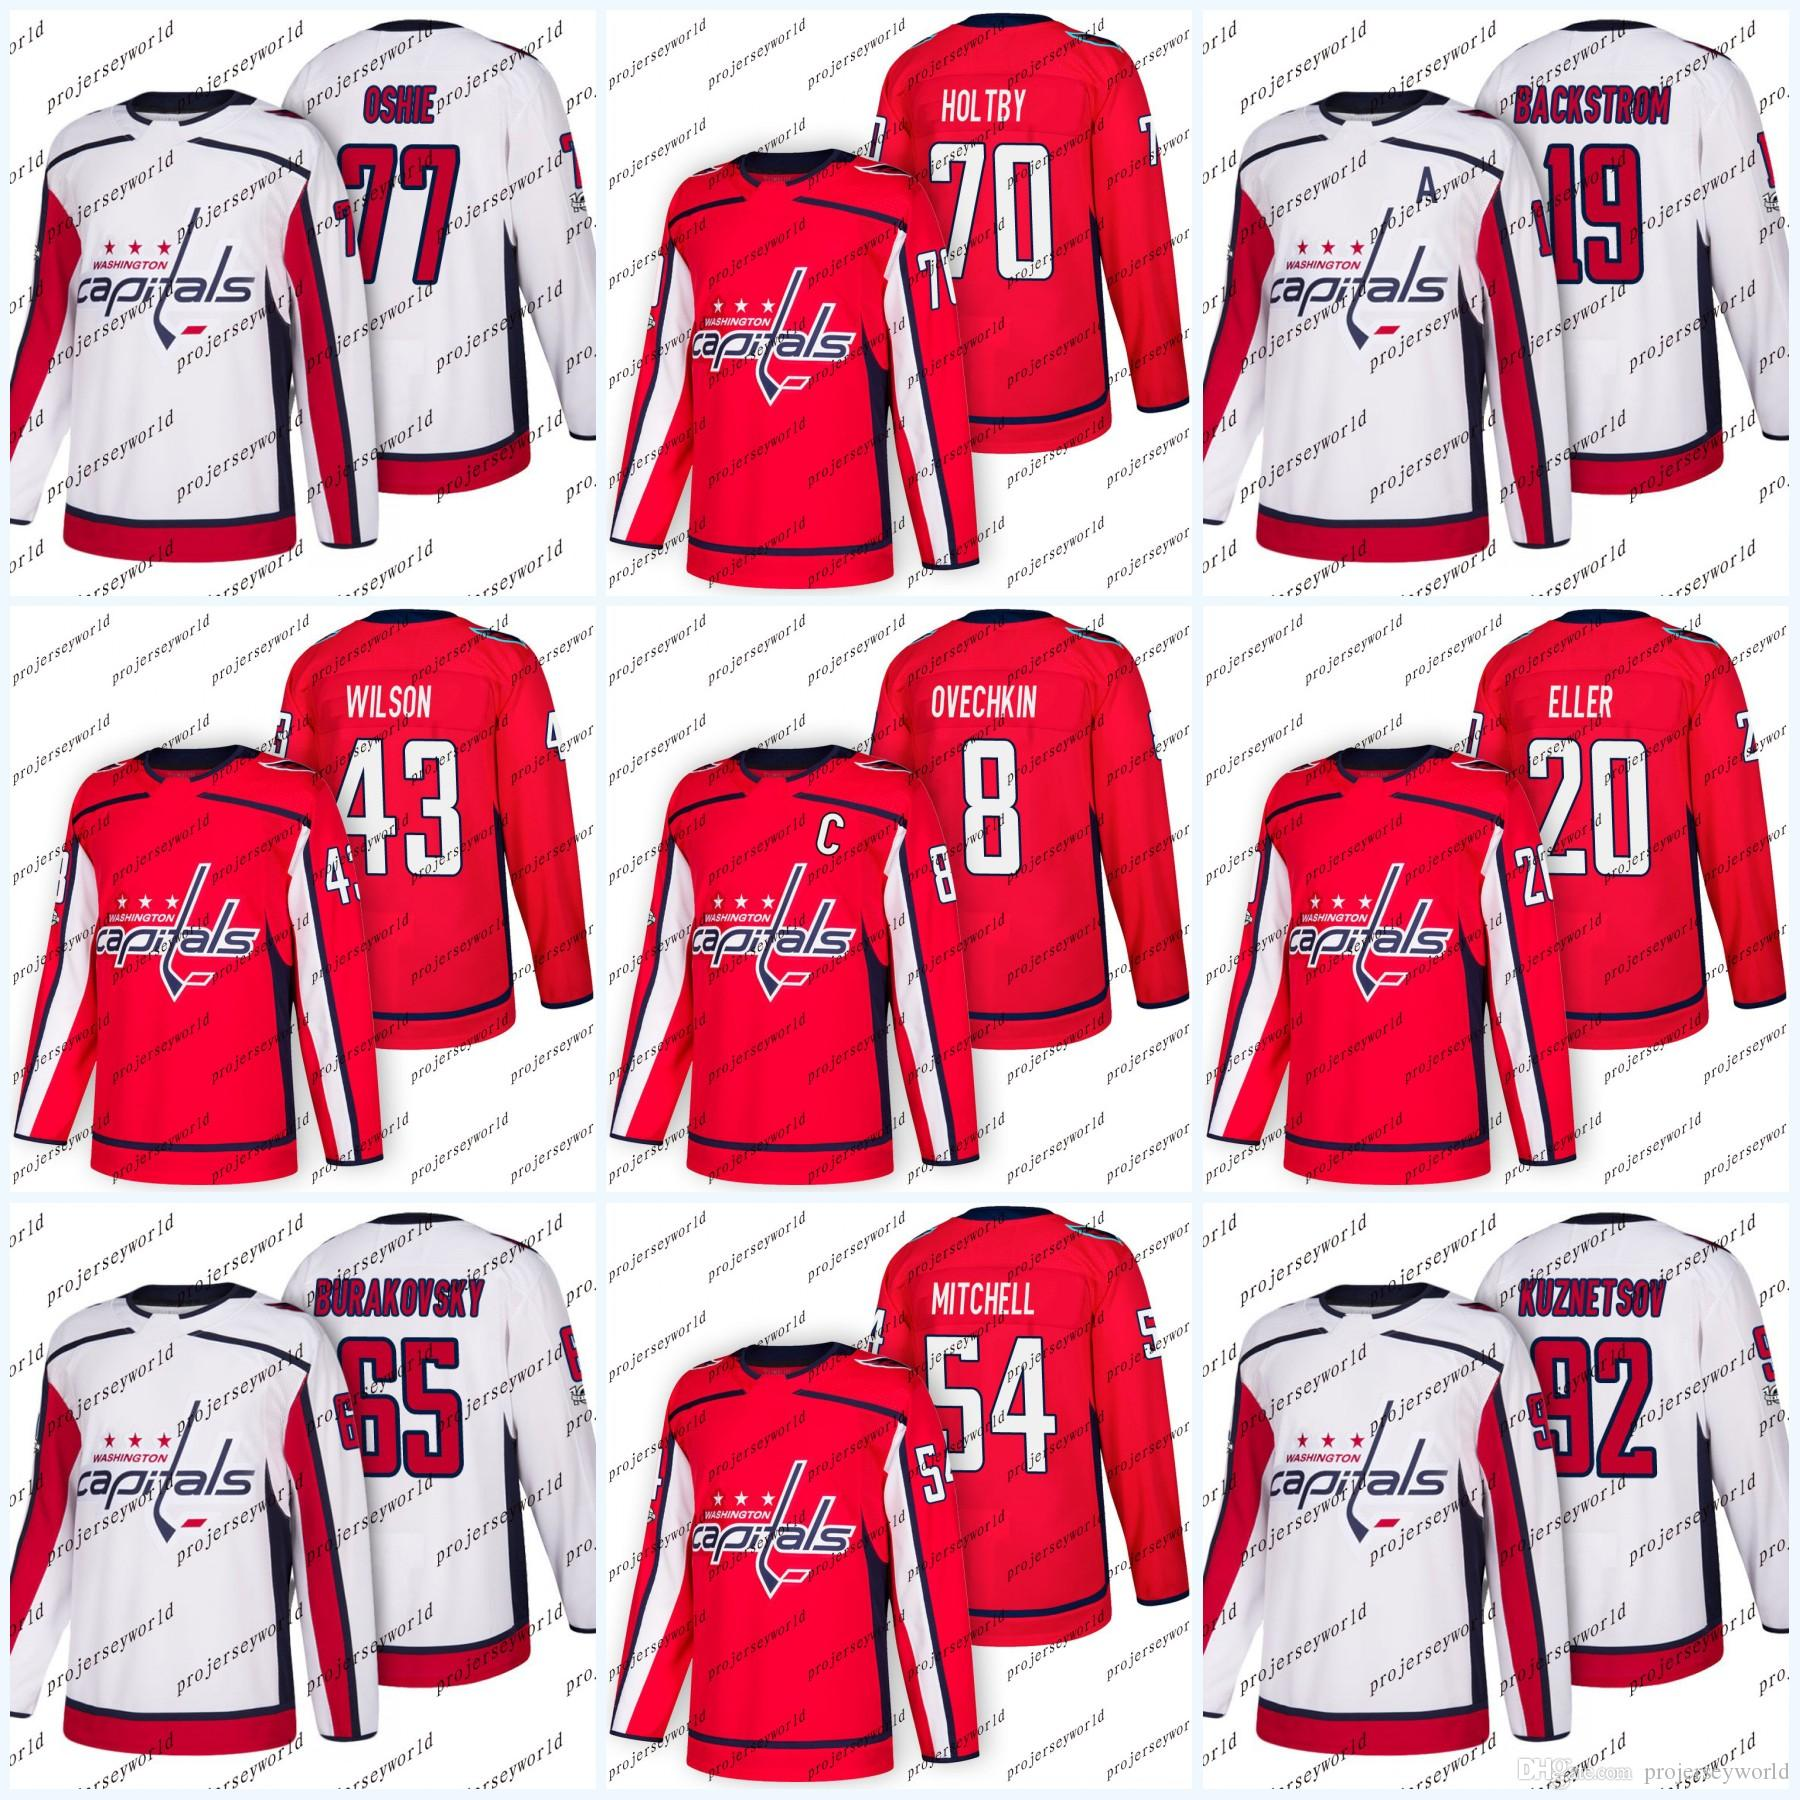 240edf179 Youth 100th Patch Washington Capitals Alex Ovechkin T.J. Oshie Evgeny  Kuznetsov Nicklas Backstrom Tom Wilson Team Road Ice Hockey Jerseys UK 2019  From ...